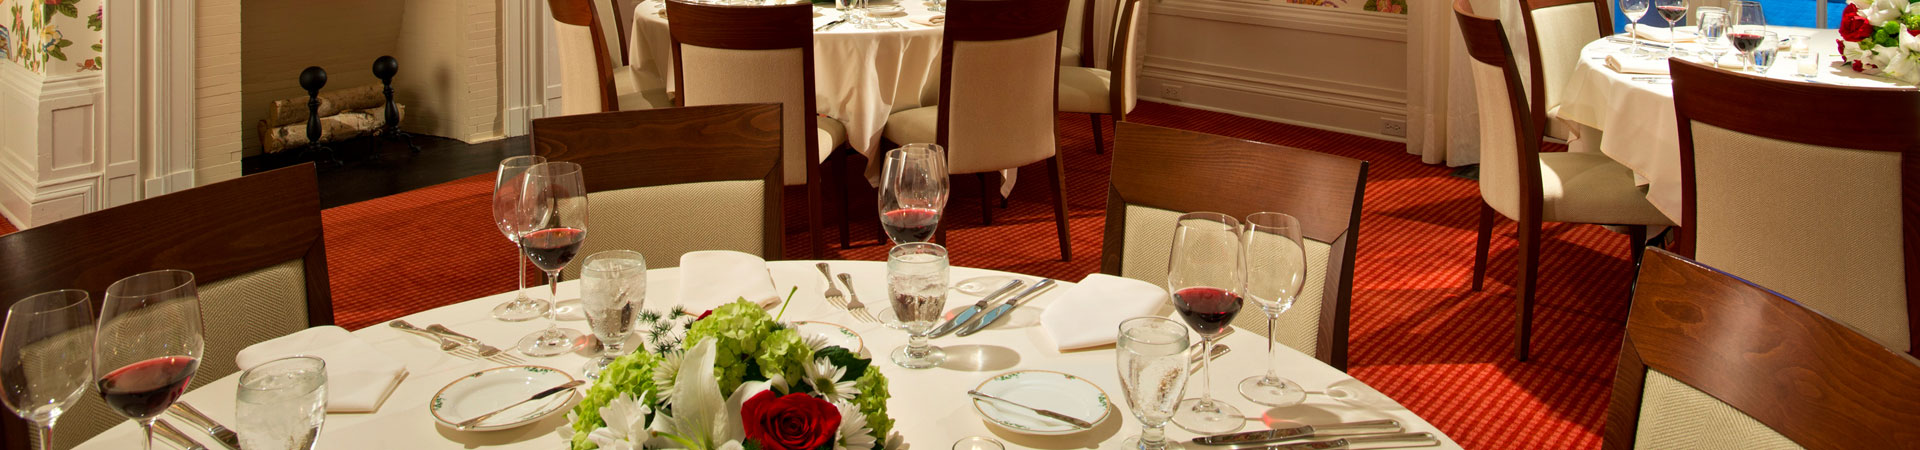 Dining Facilities at The Otesaga Resort Hotel Cooperstown, New York Top